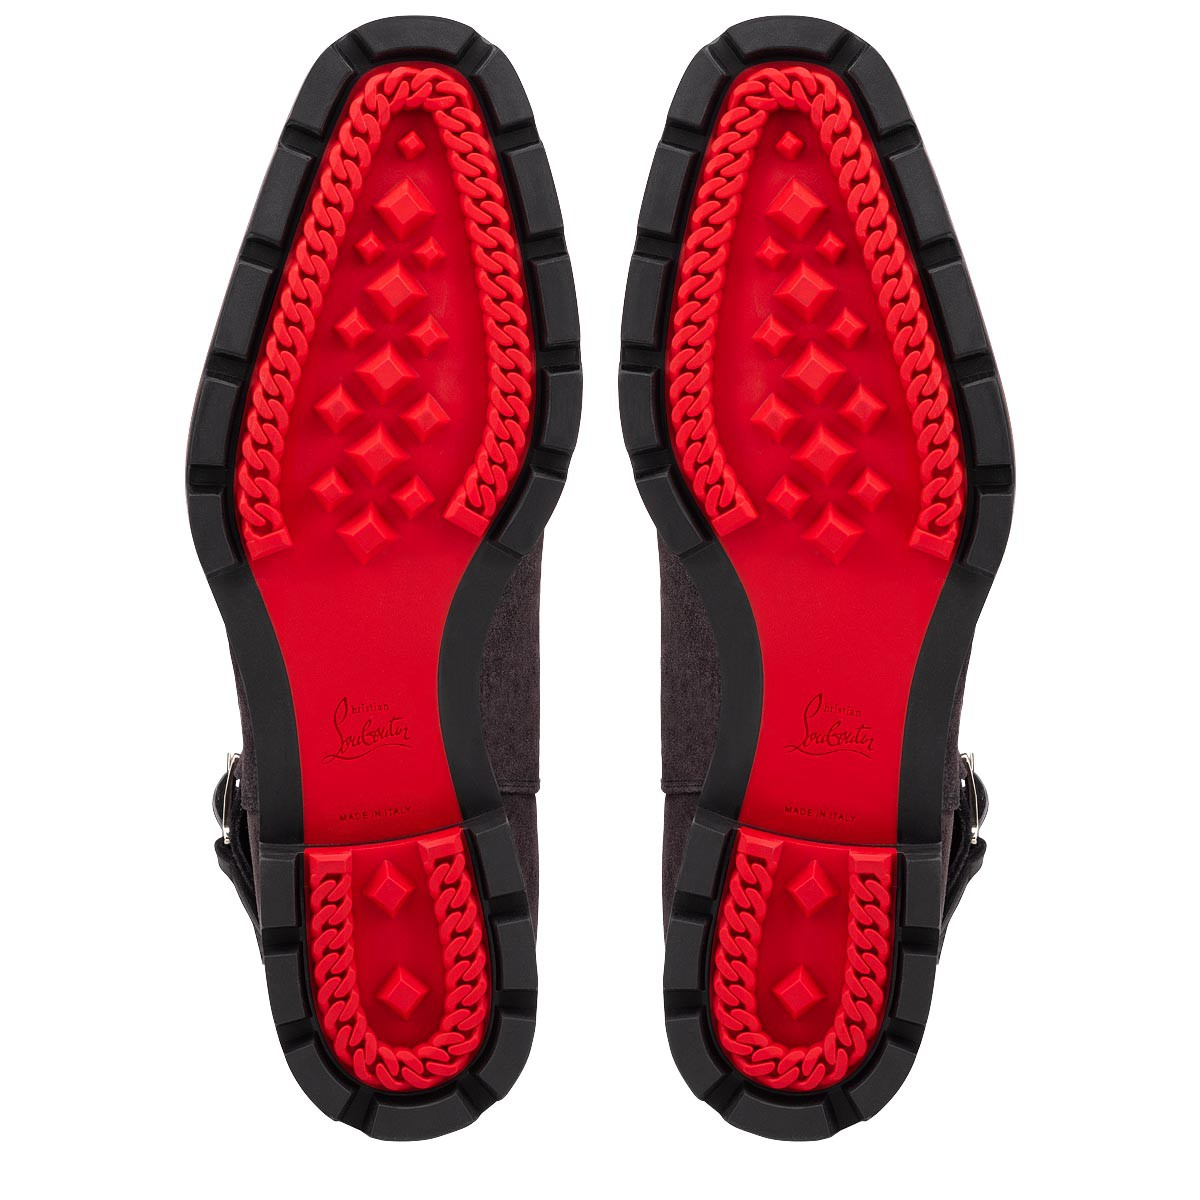 Shoes - Kicko Croc Flat - Christian Louboutin